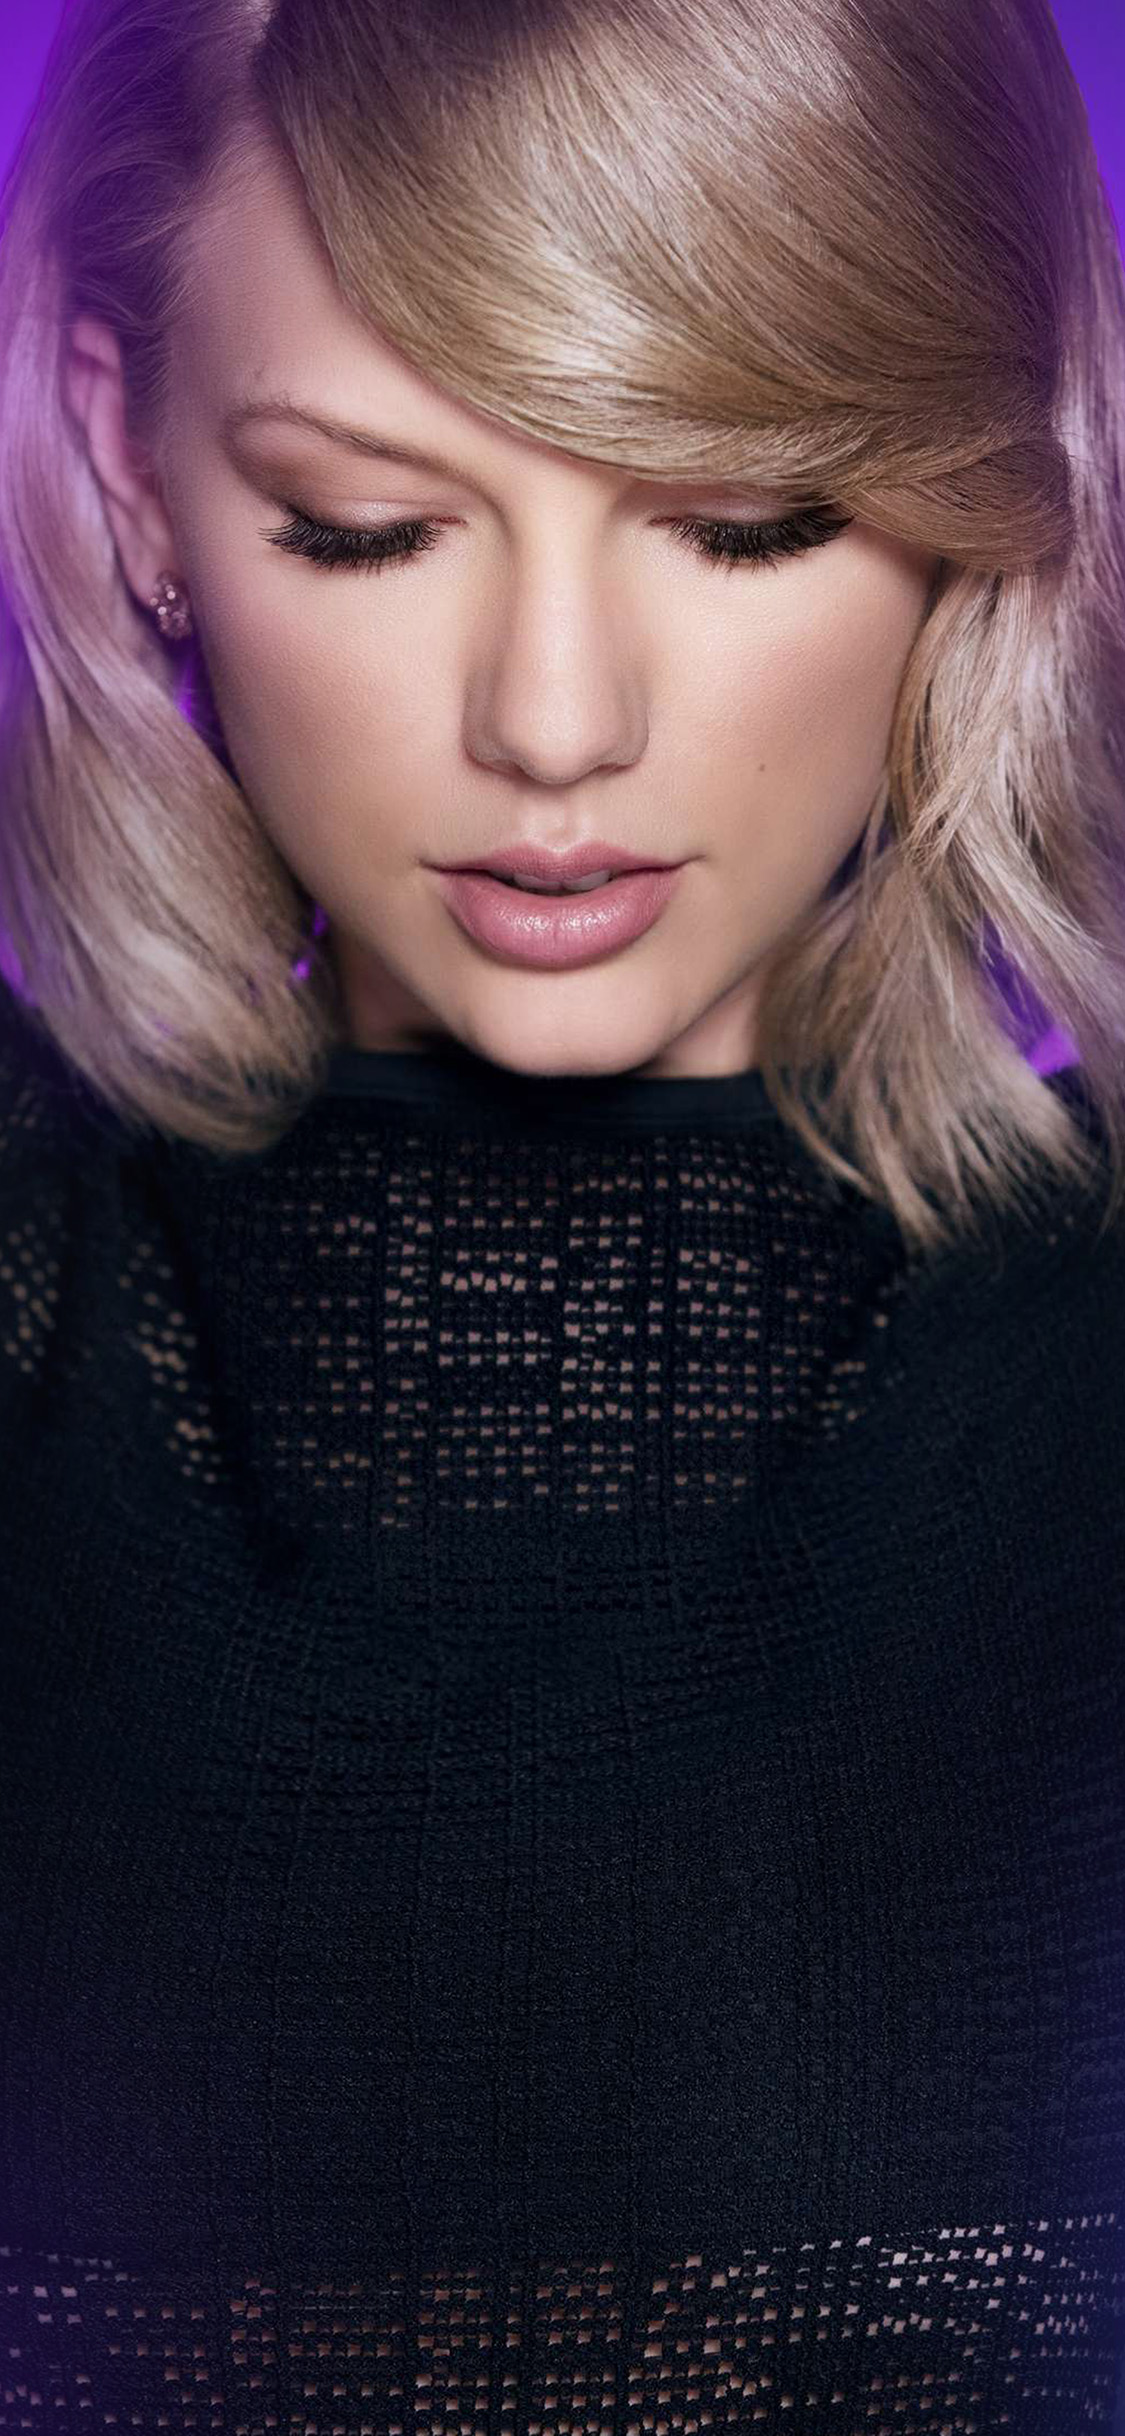 iPhonexpapers.com-Apple-iPhone-wallpaper-hr42-taylor-swift-purple-girl-artist-singer